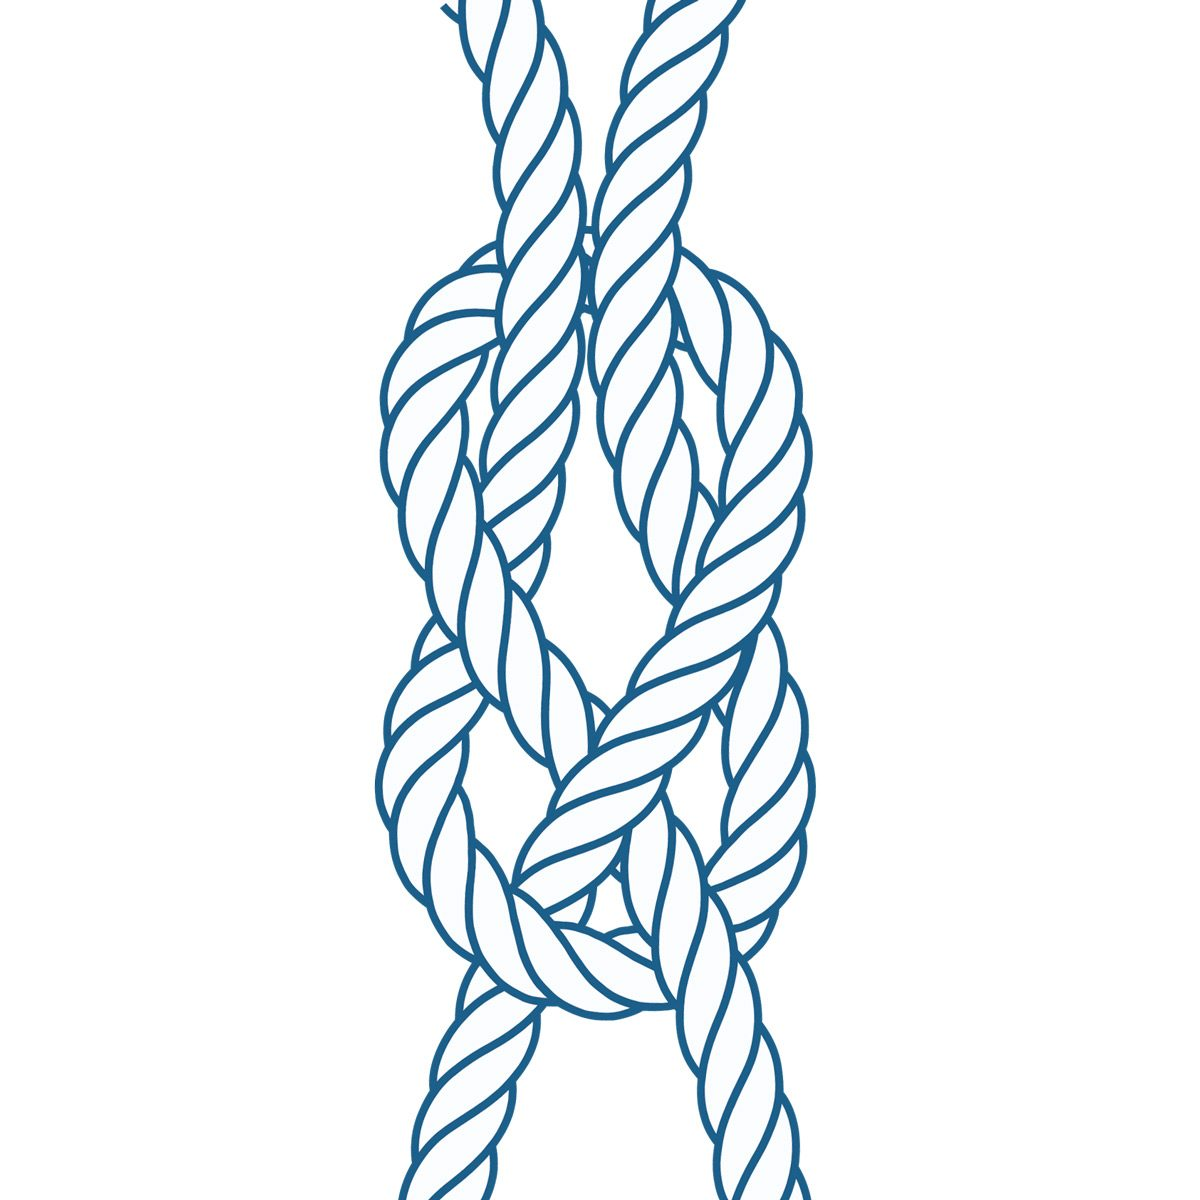 knots-03 sheet bend knot